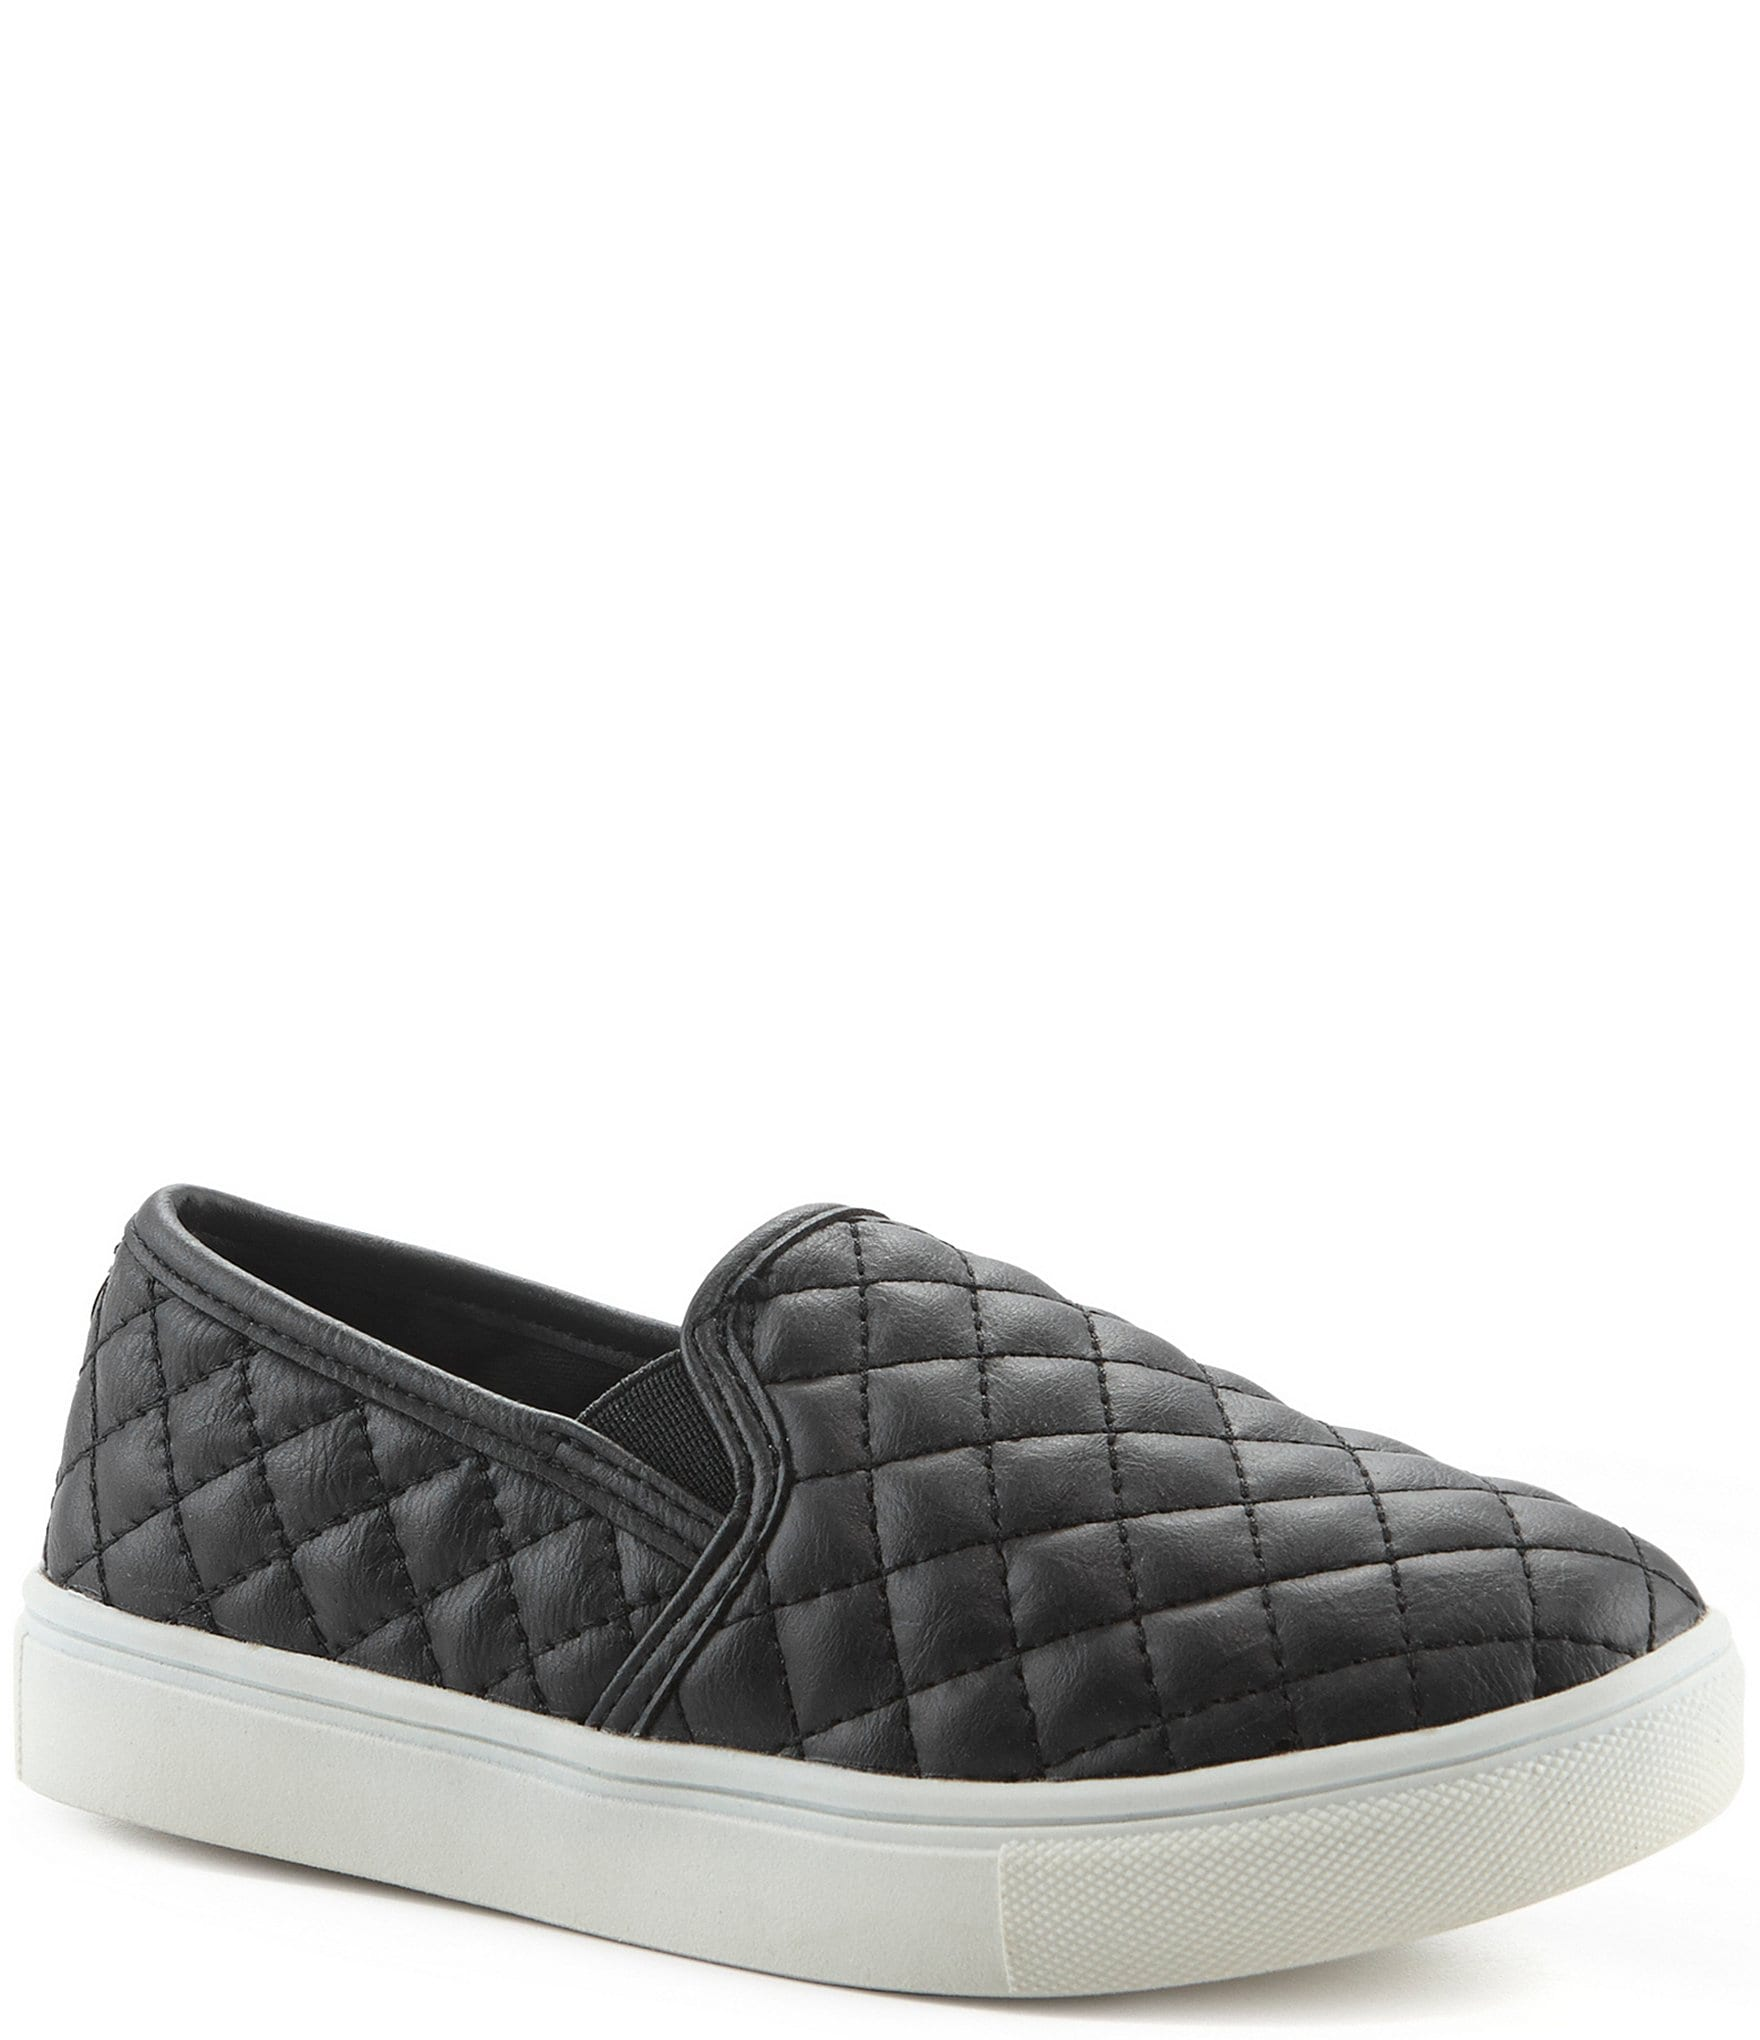 f4713310ea8d3 Steve Madden J-Ecentricq Girls' Quilted Slip-On Sneakers